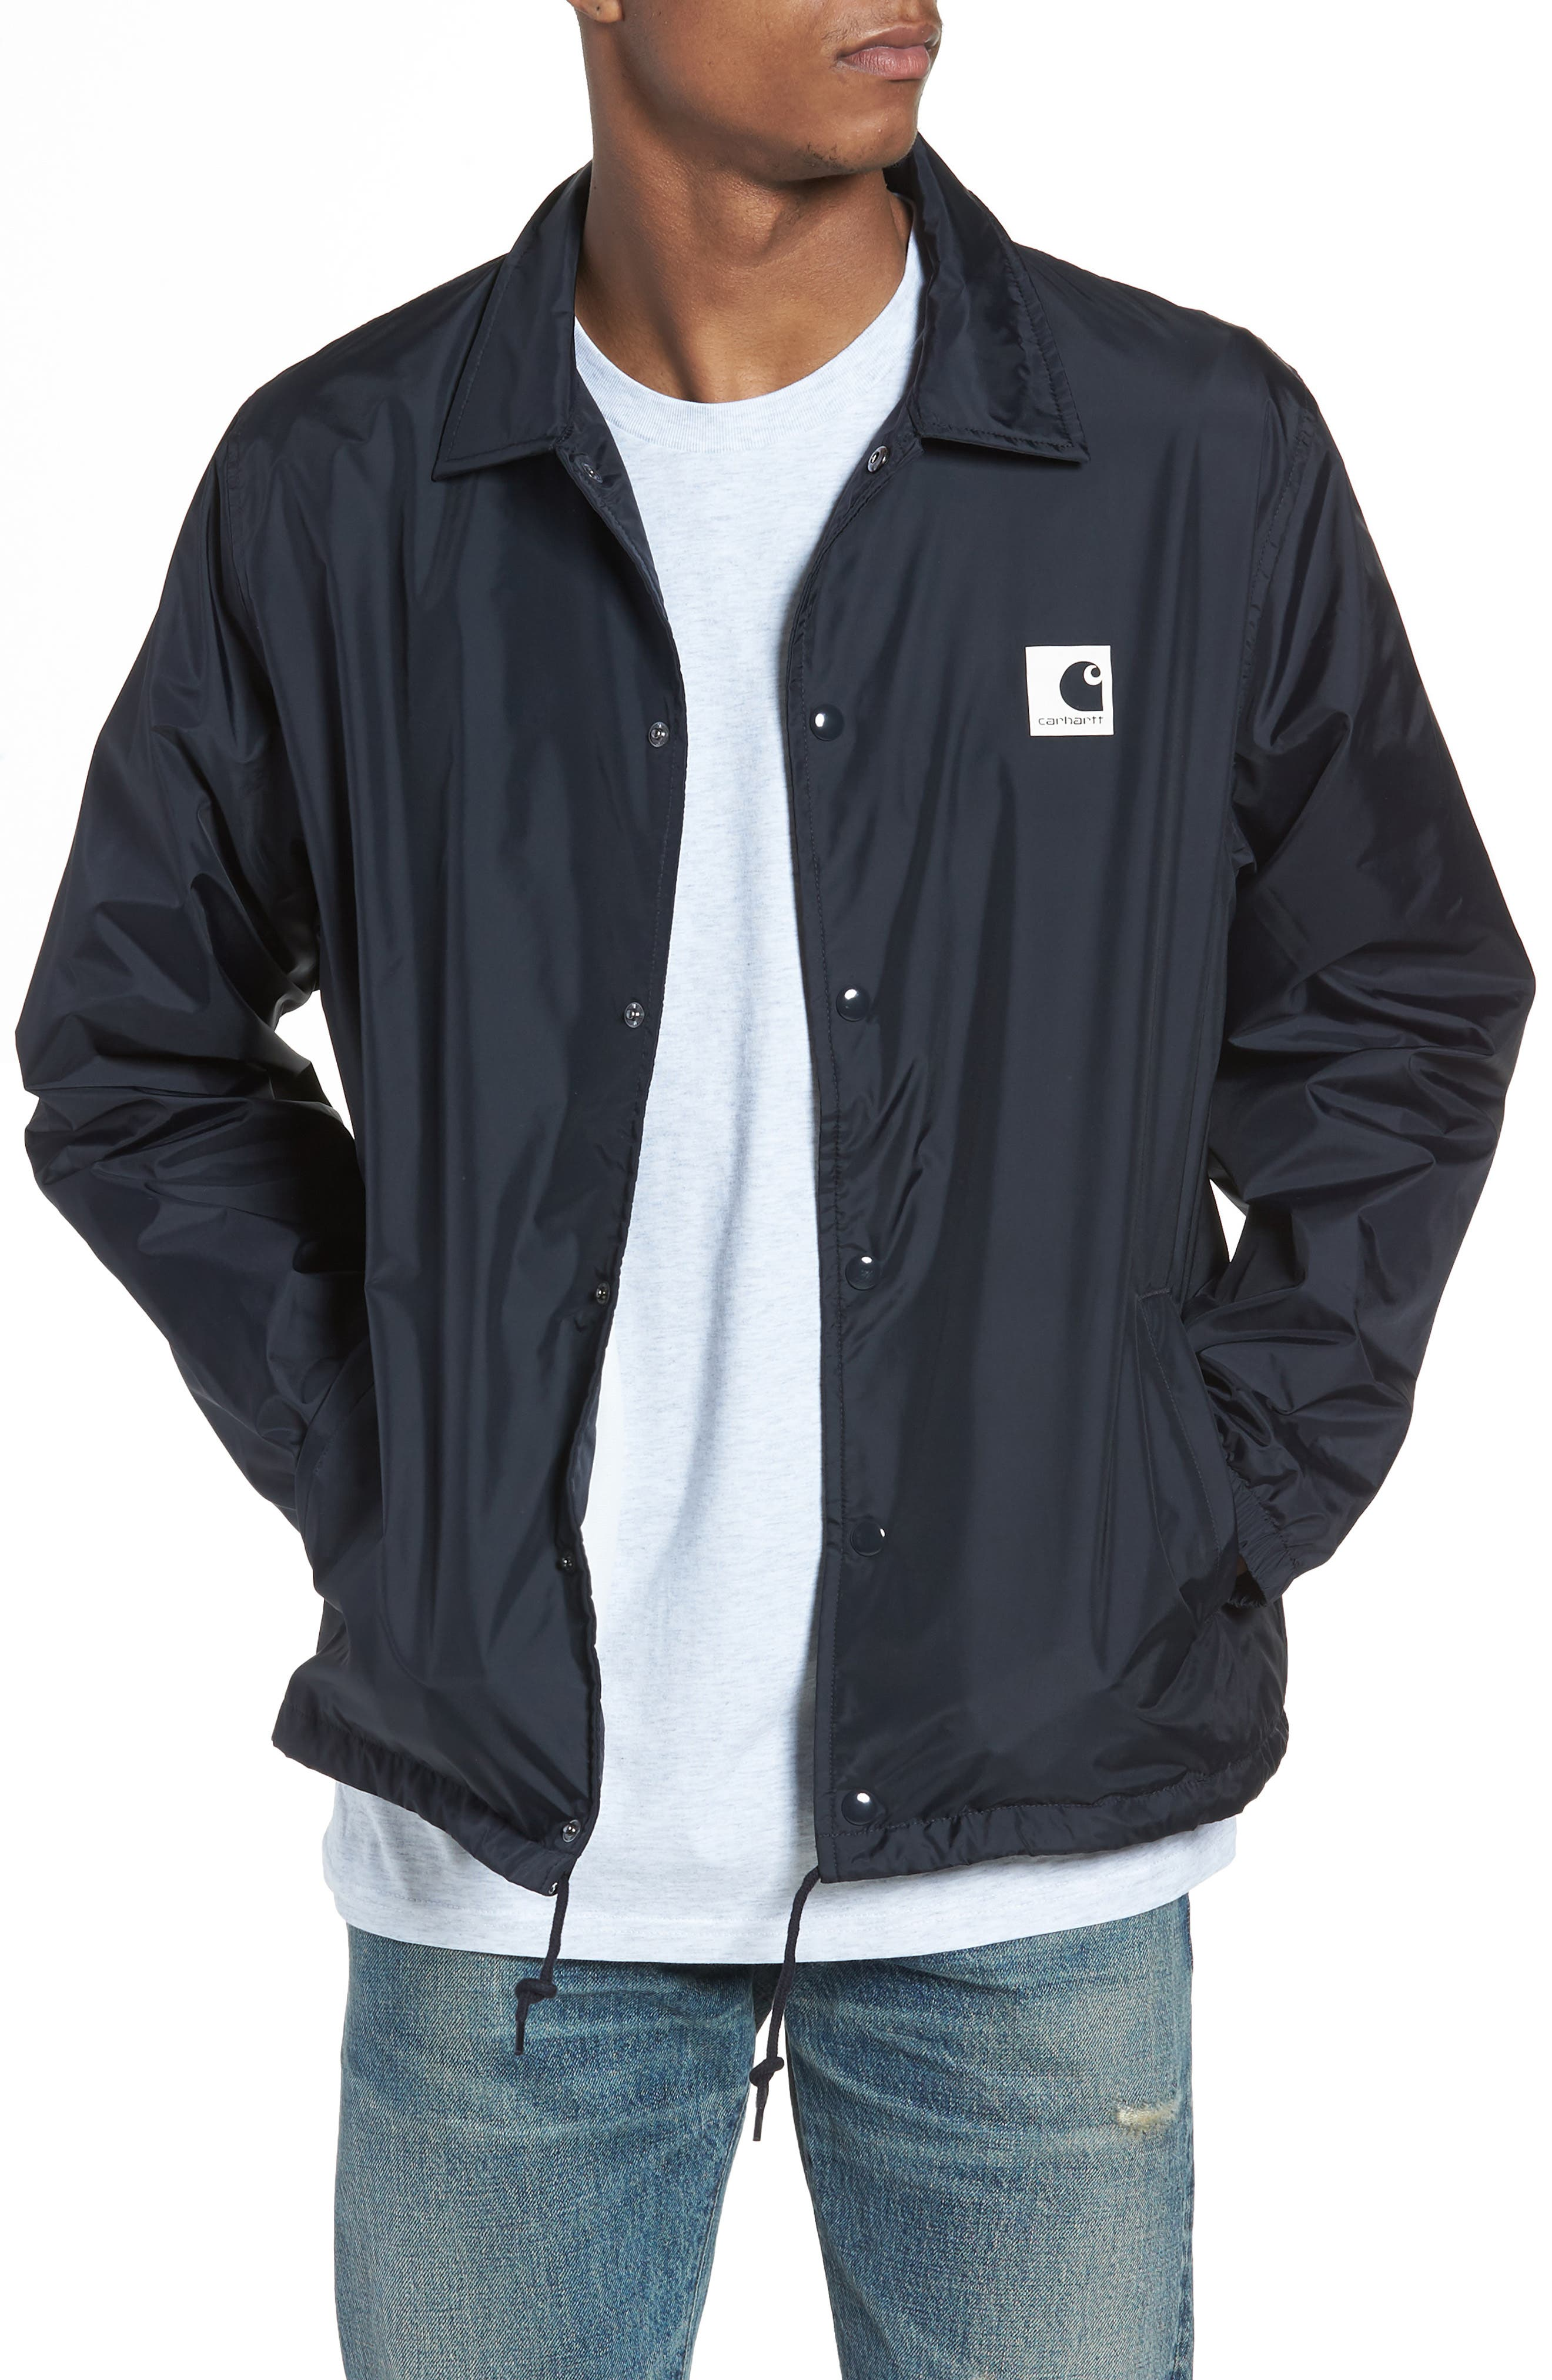 Sport Coach's Jacket,                             Main thumbnail 1, color,